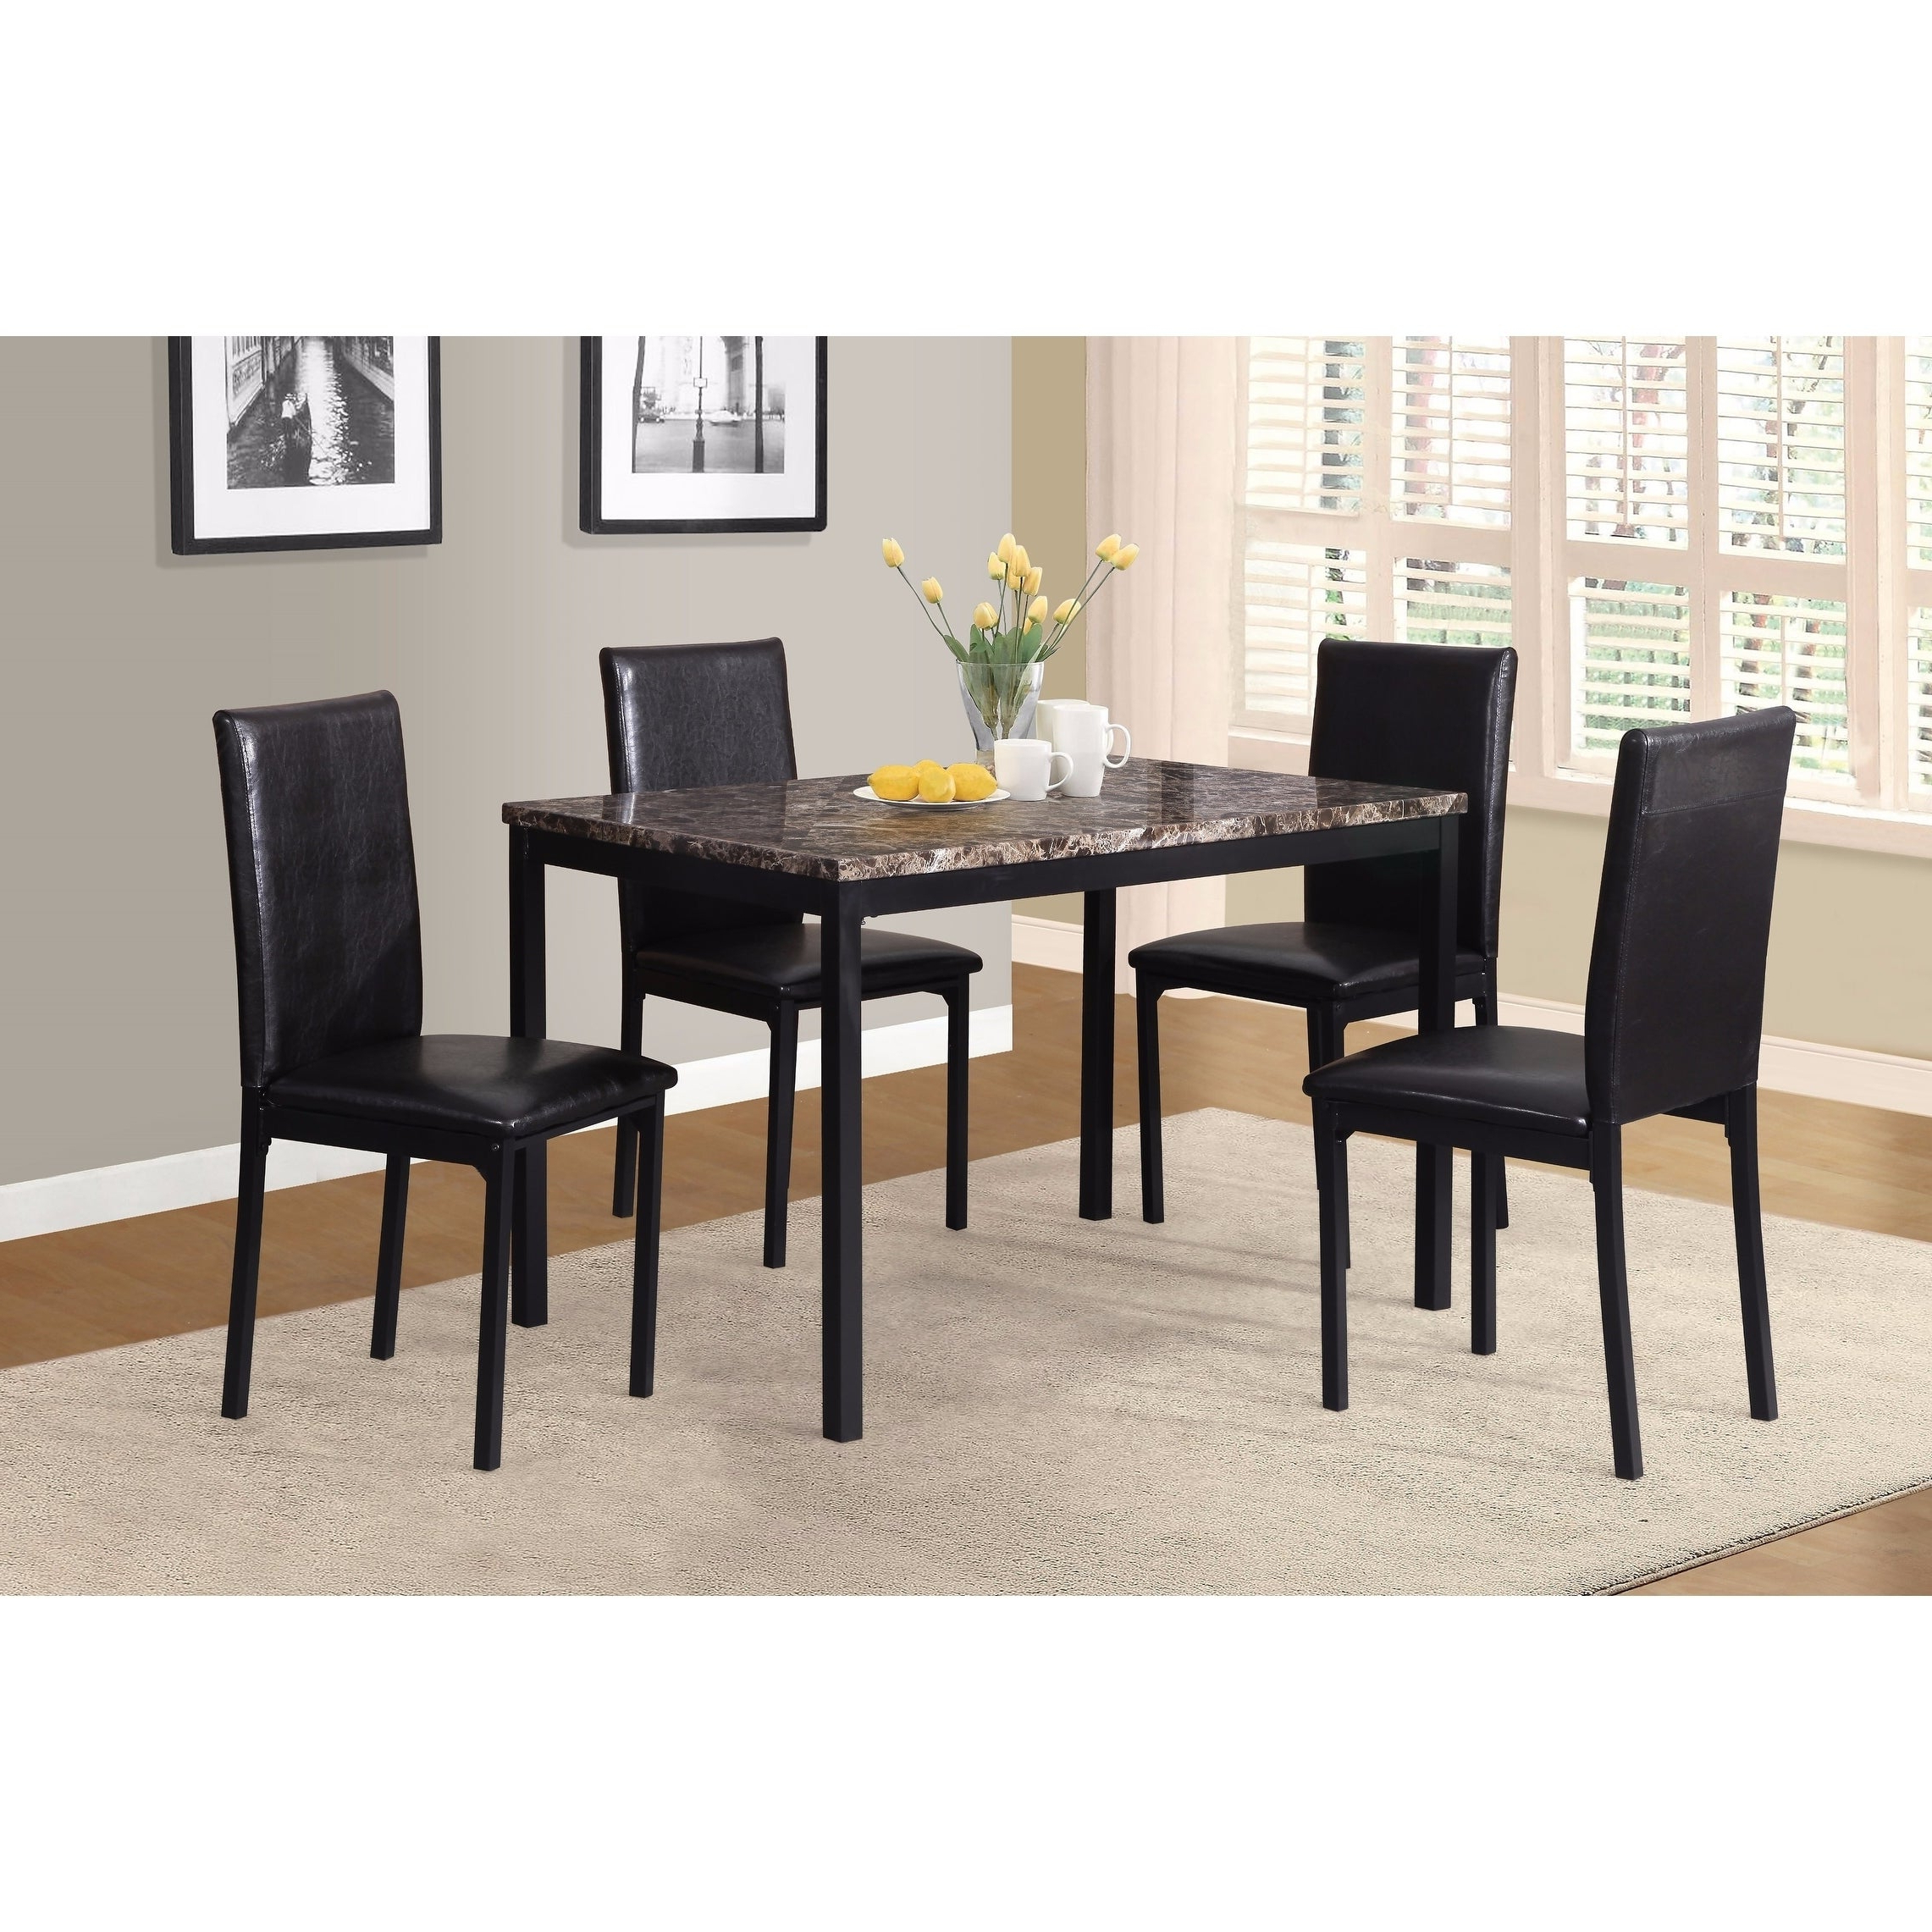 Noyes 5 Piece Dining Sets For Fashionable Shop Noyes Metal Dining Table With Laminated Faux Marble Top – Black (View 11 of 25)